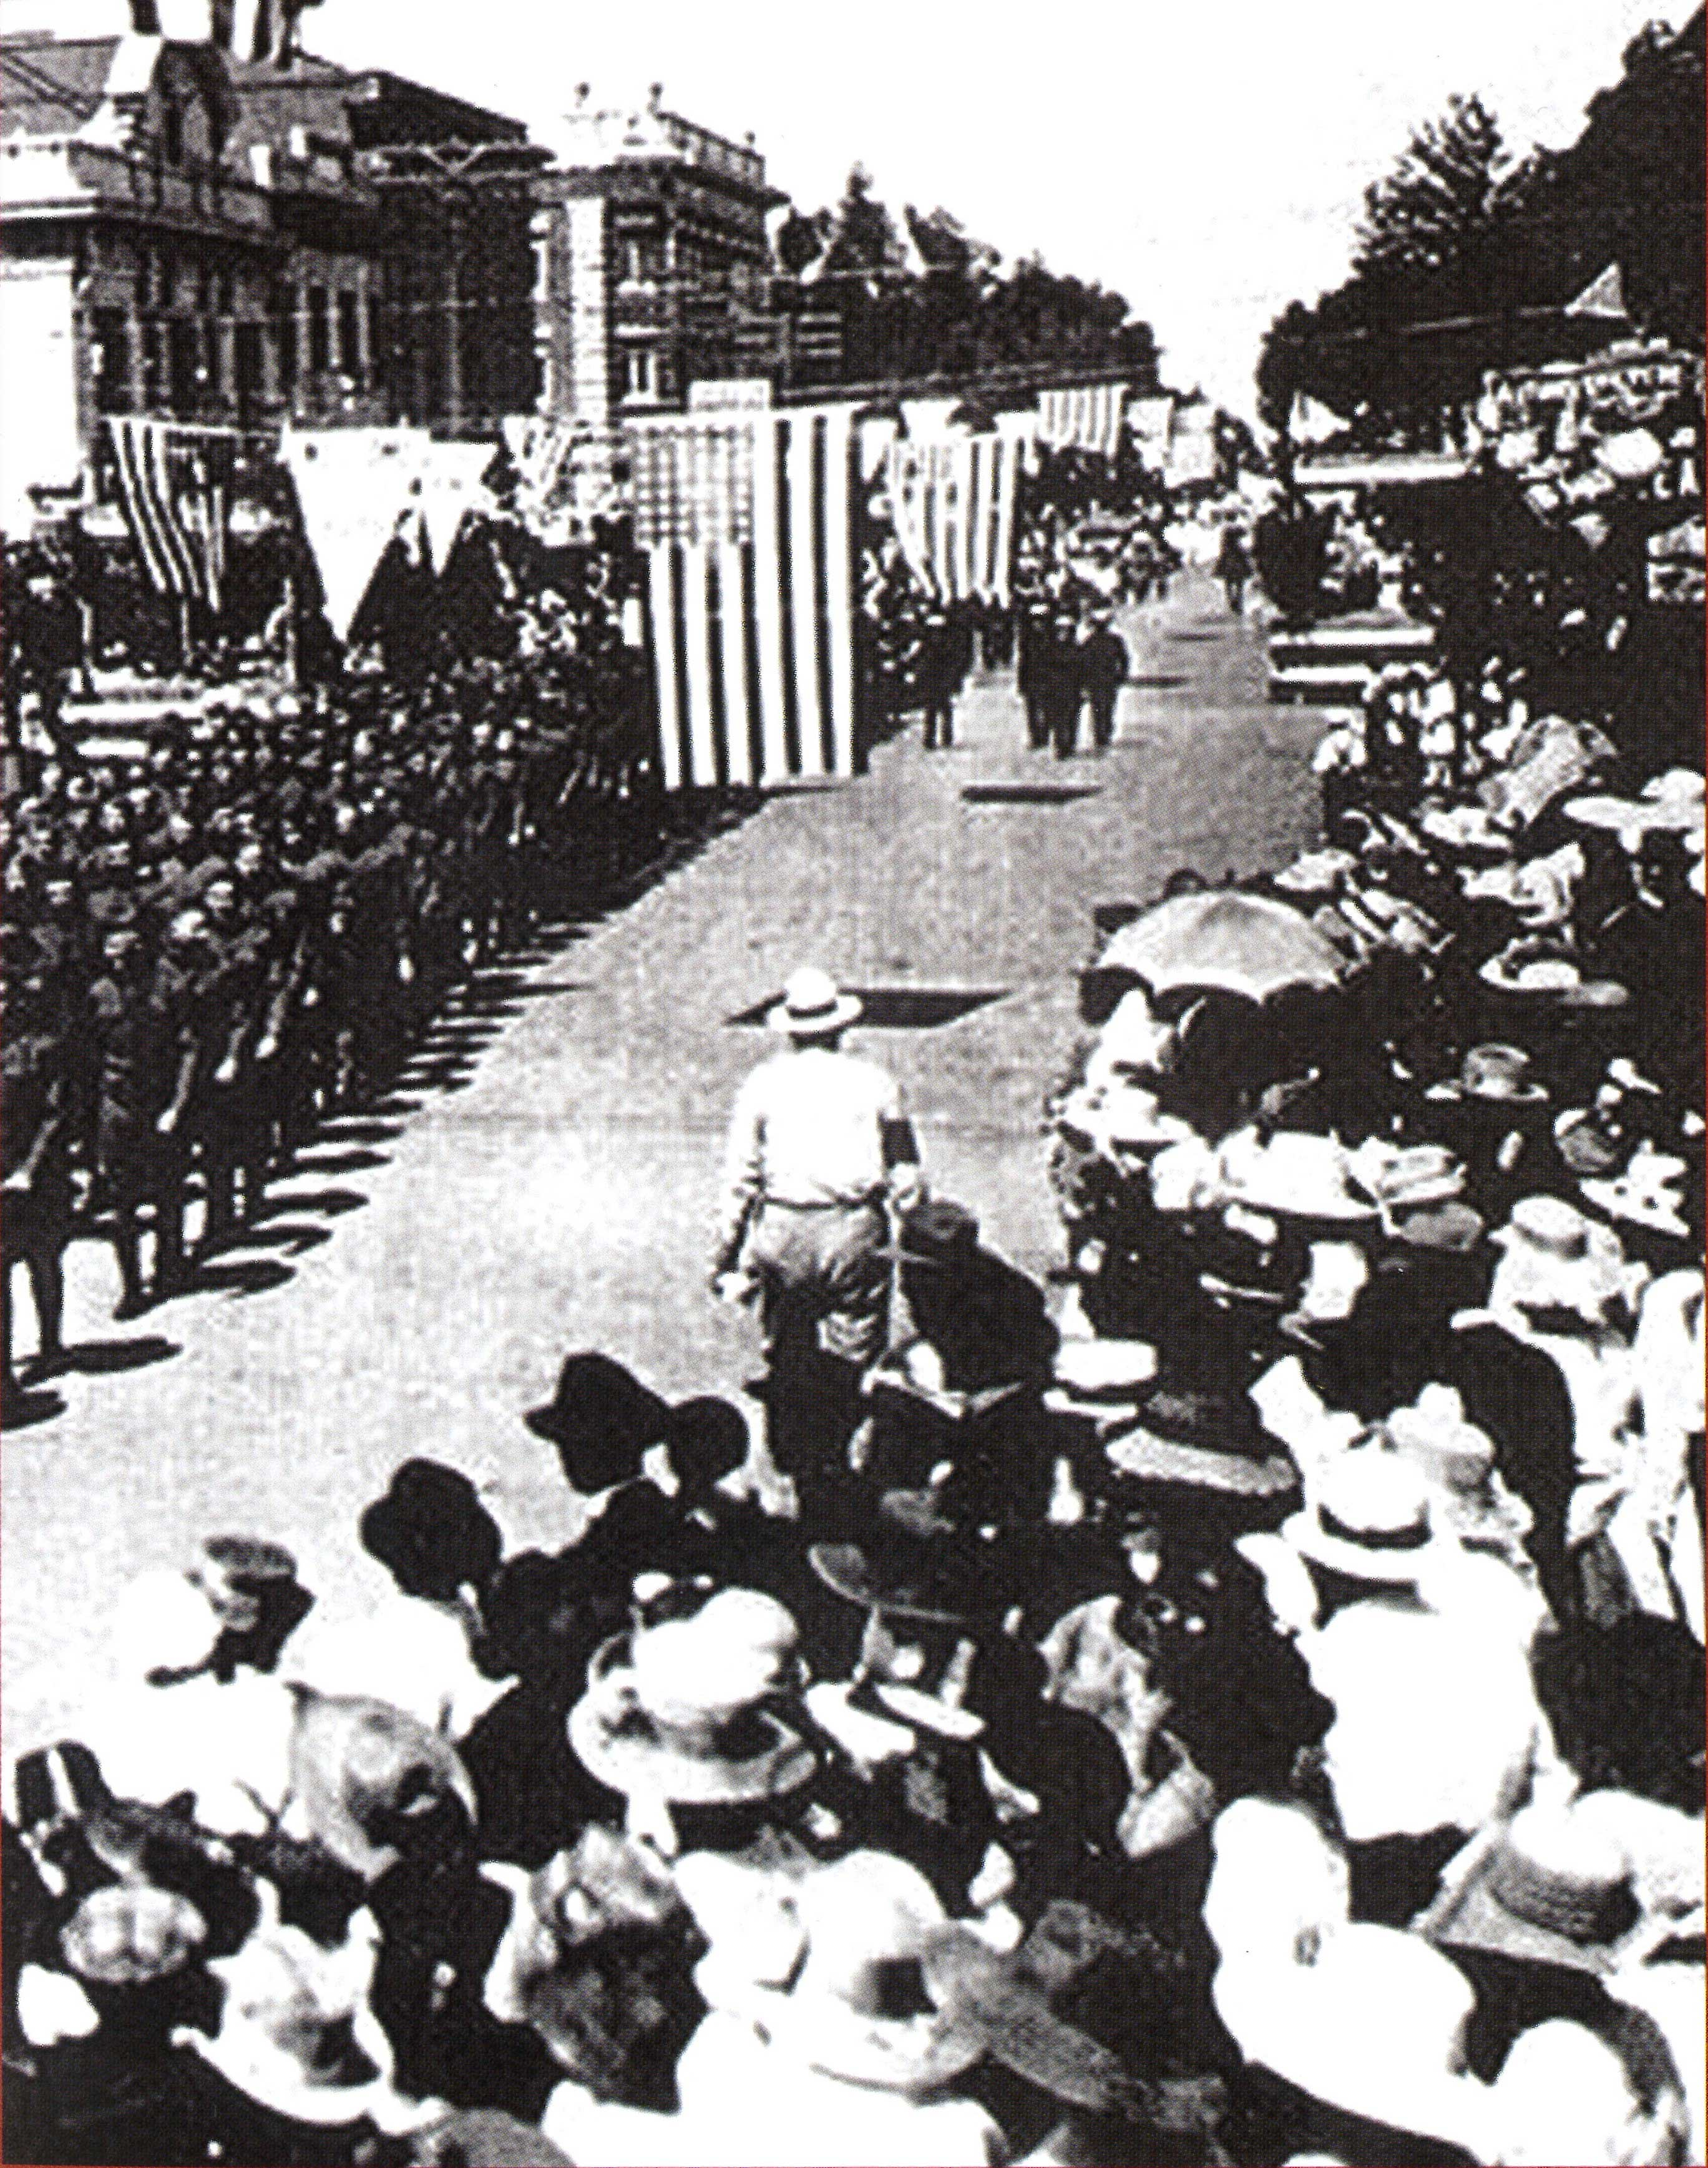 June 21, 1919 military parade, Lodi, Calif., with first A&W stand in upper right)